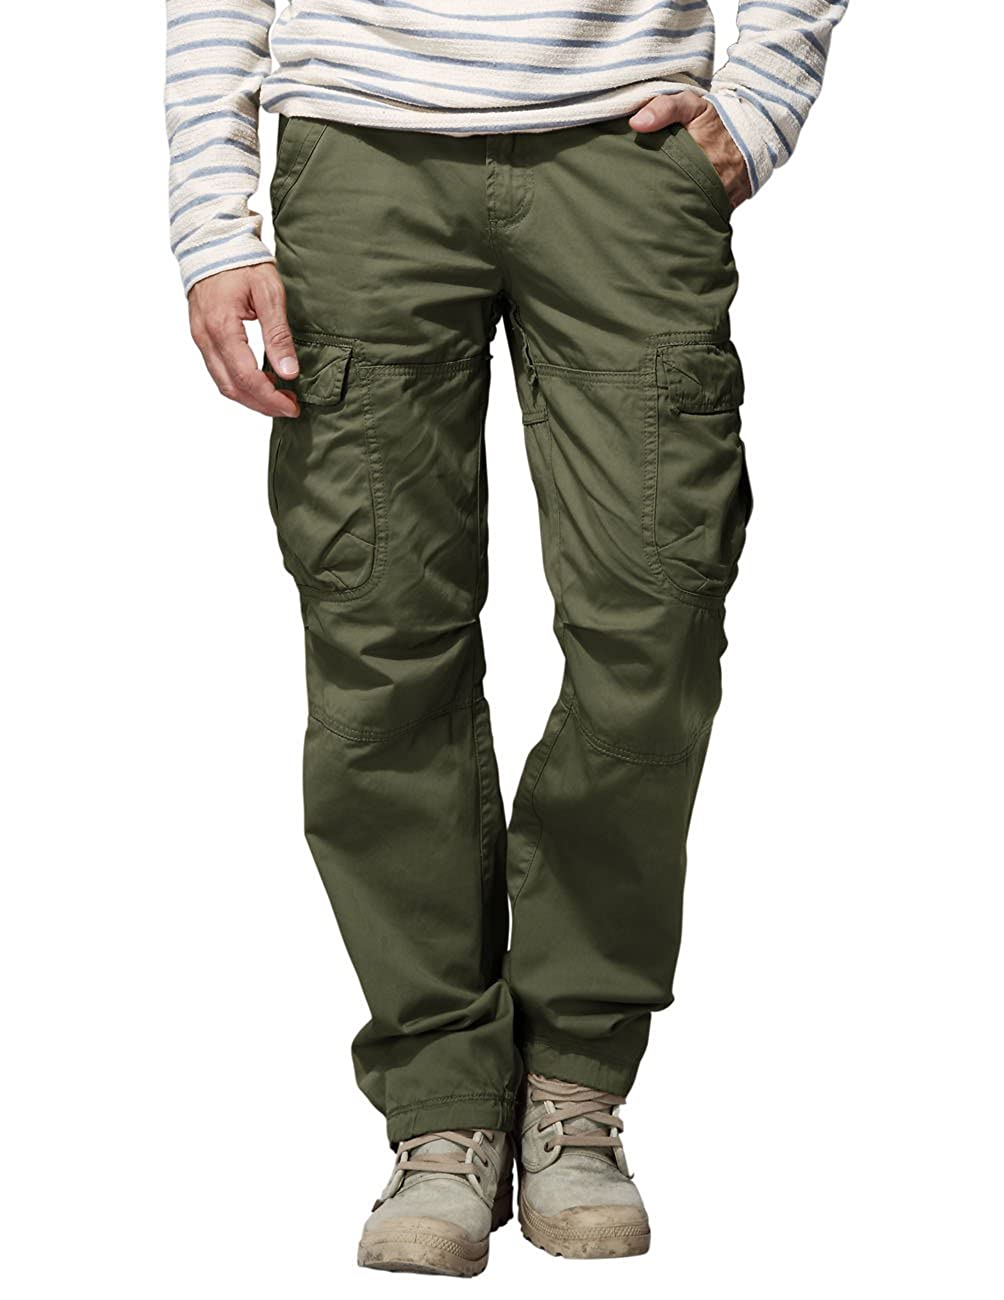 Find great deals on eBay for mens cargo pants. Shop with confidence.